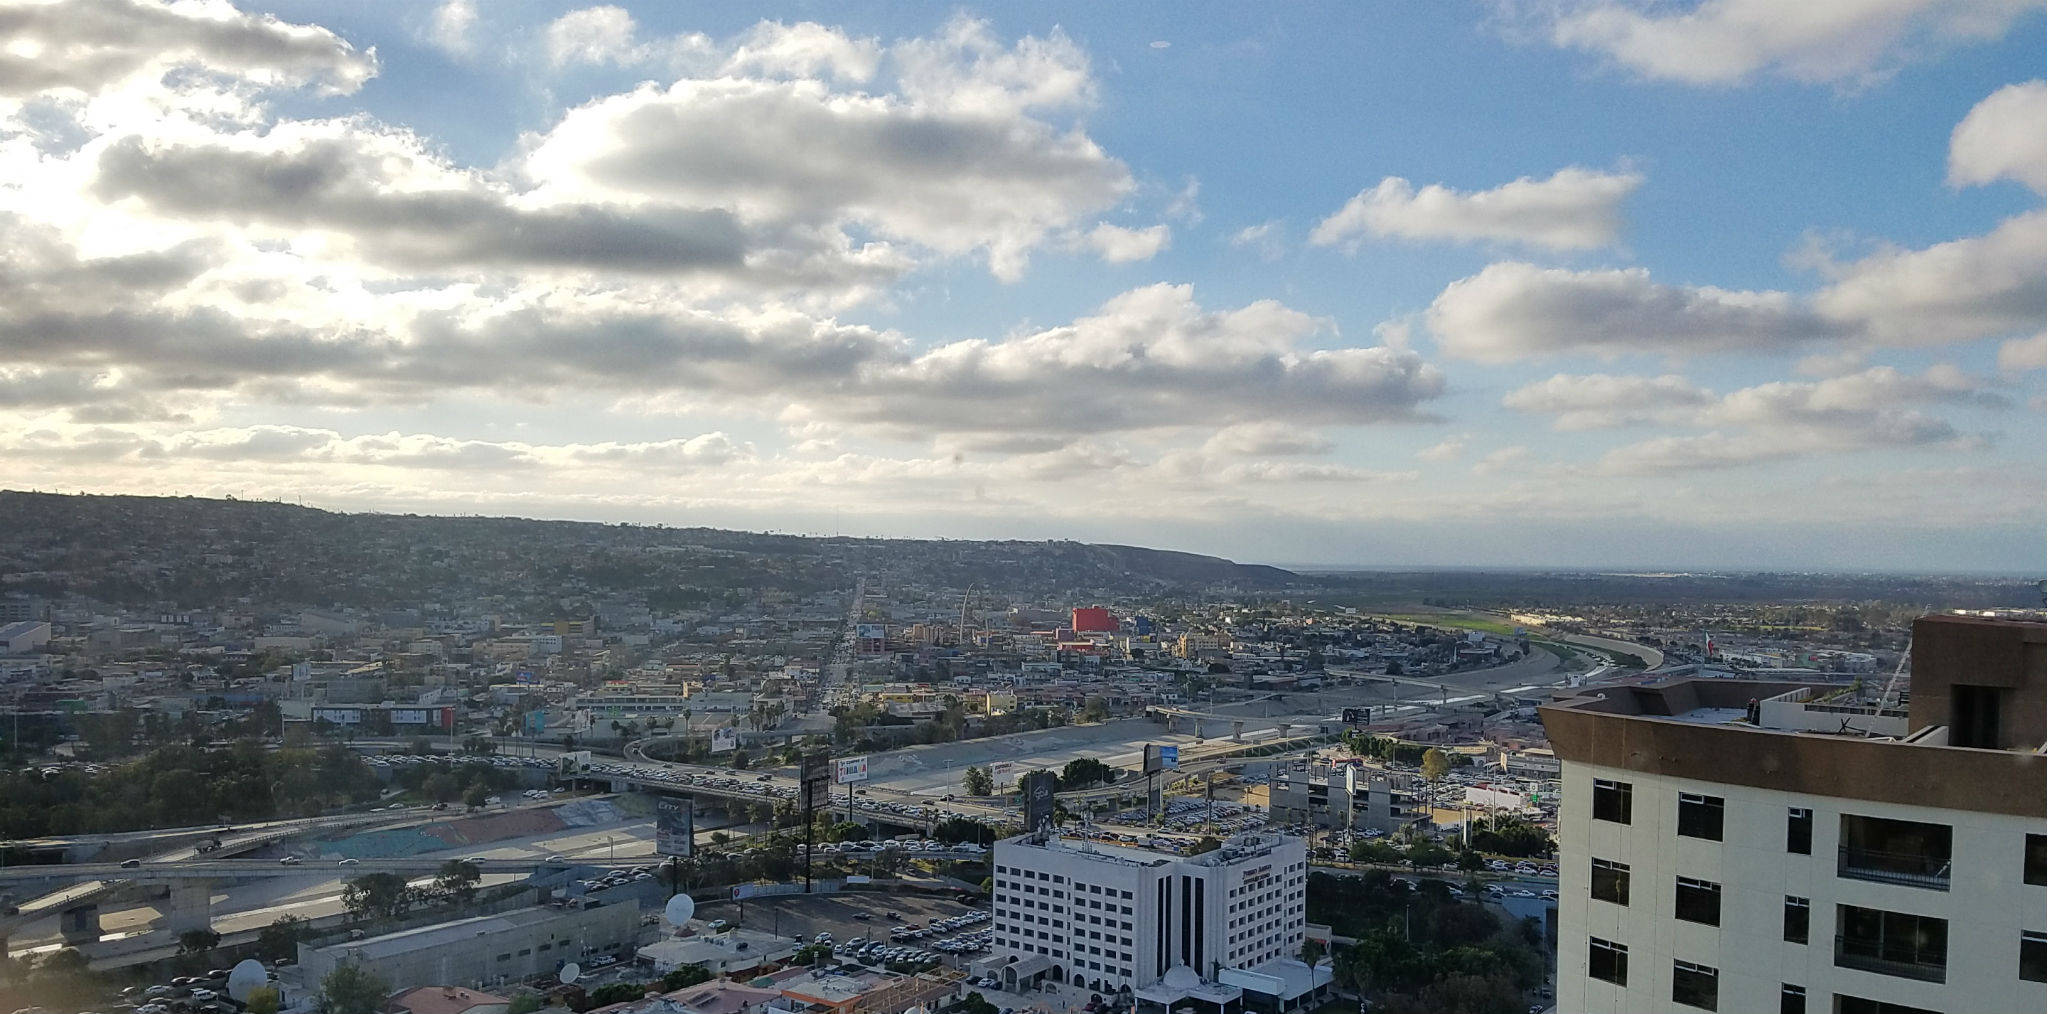 History of Tijuana, Mexico